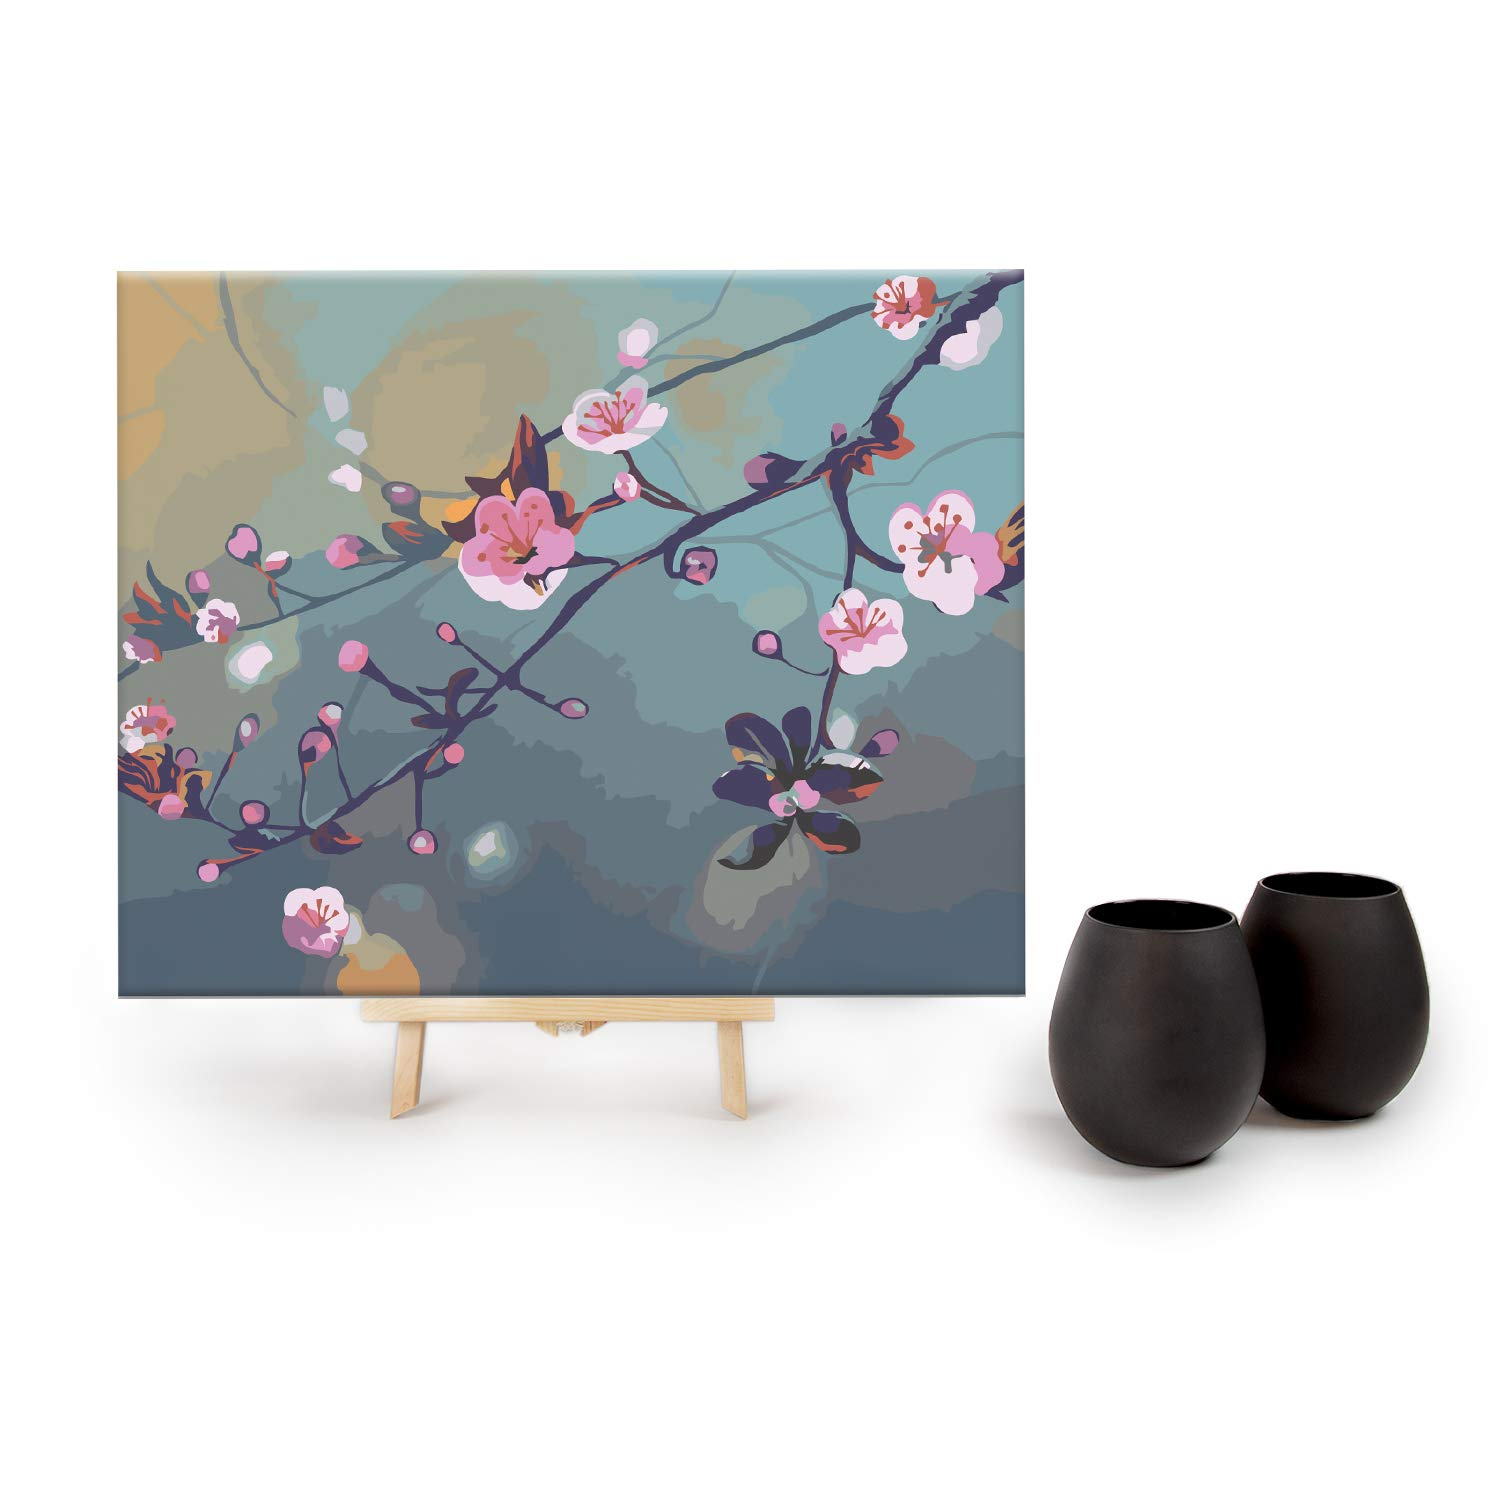 Big Betty Paint by Numbers for Adults, Black Stemless Wine Glasses, Cherry Blossom Canvas, 2 Kits